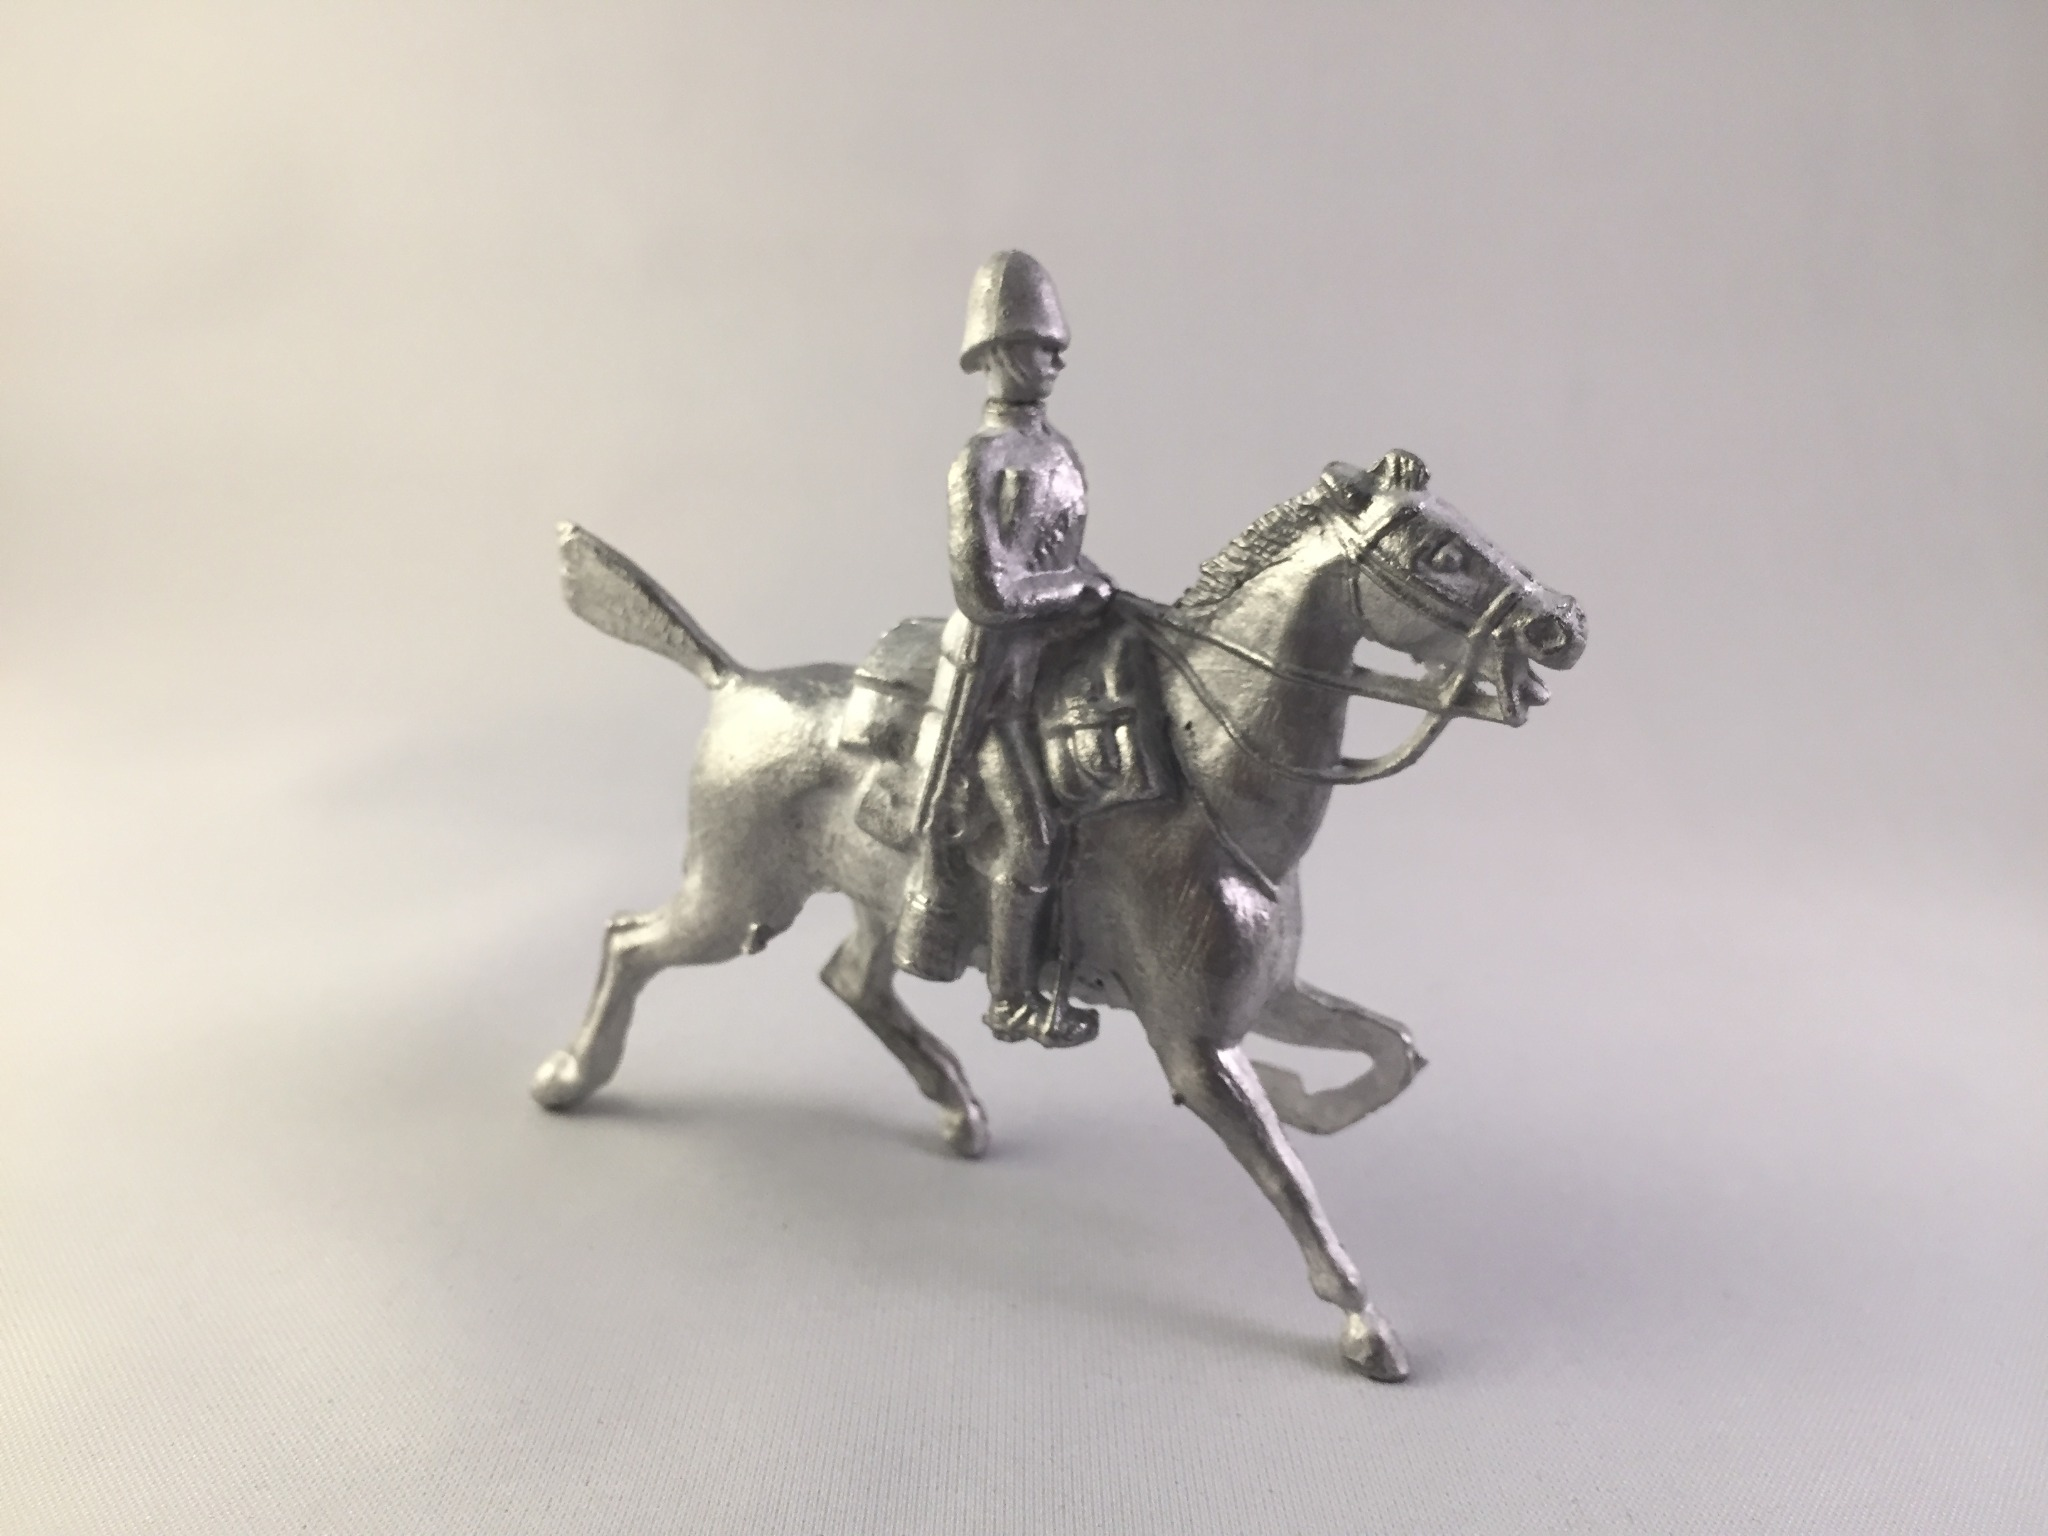 New Releases - Mounted Figures